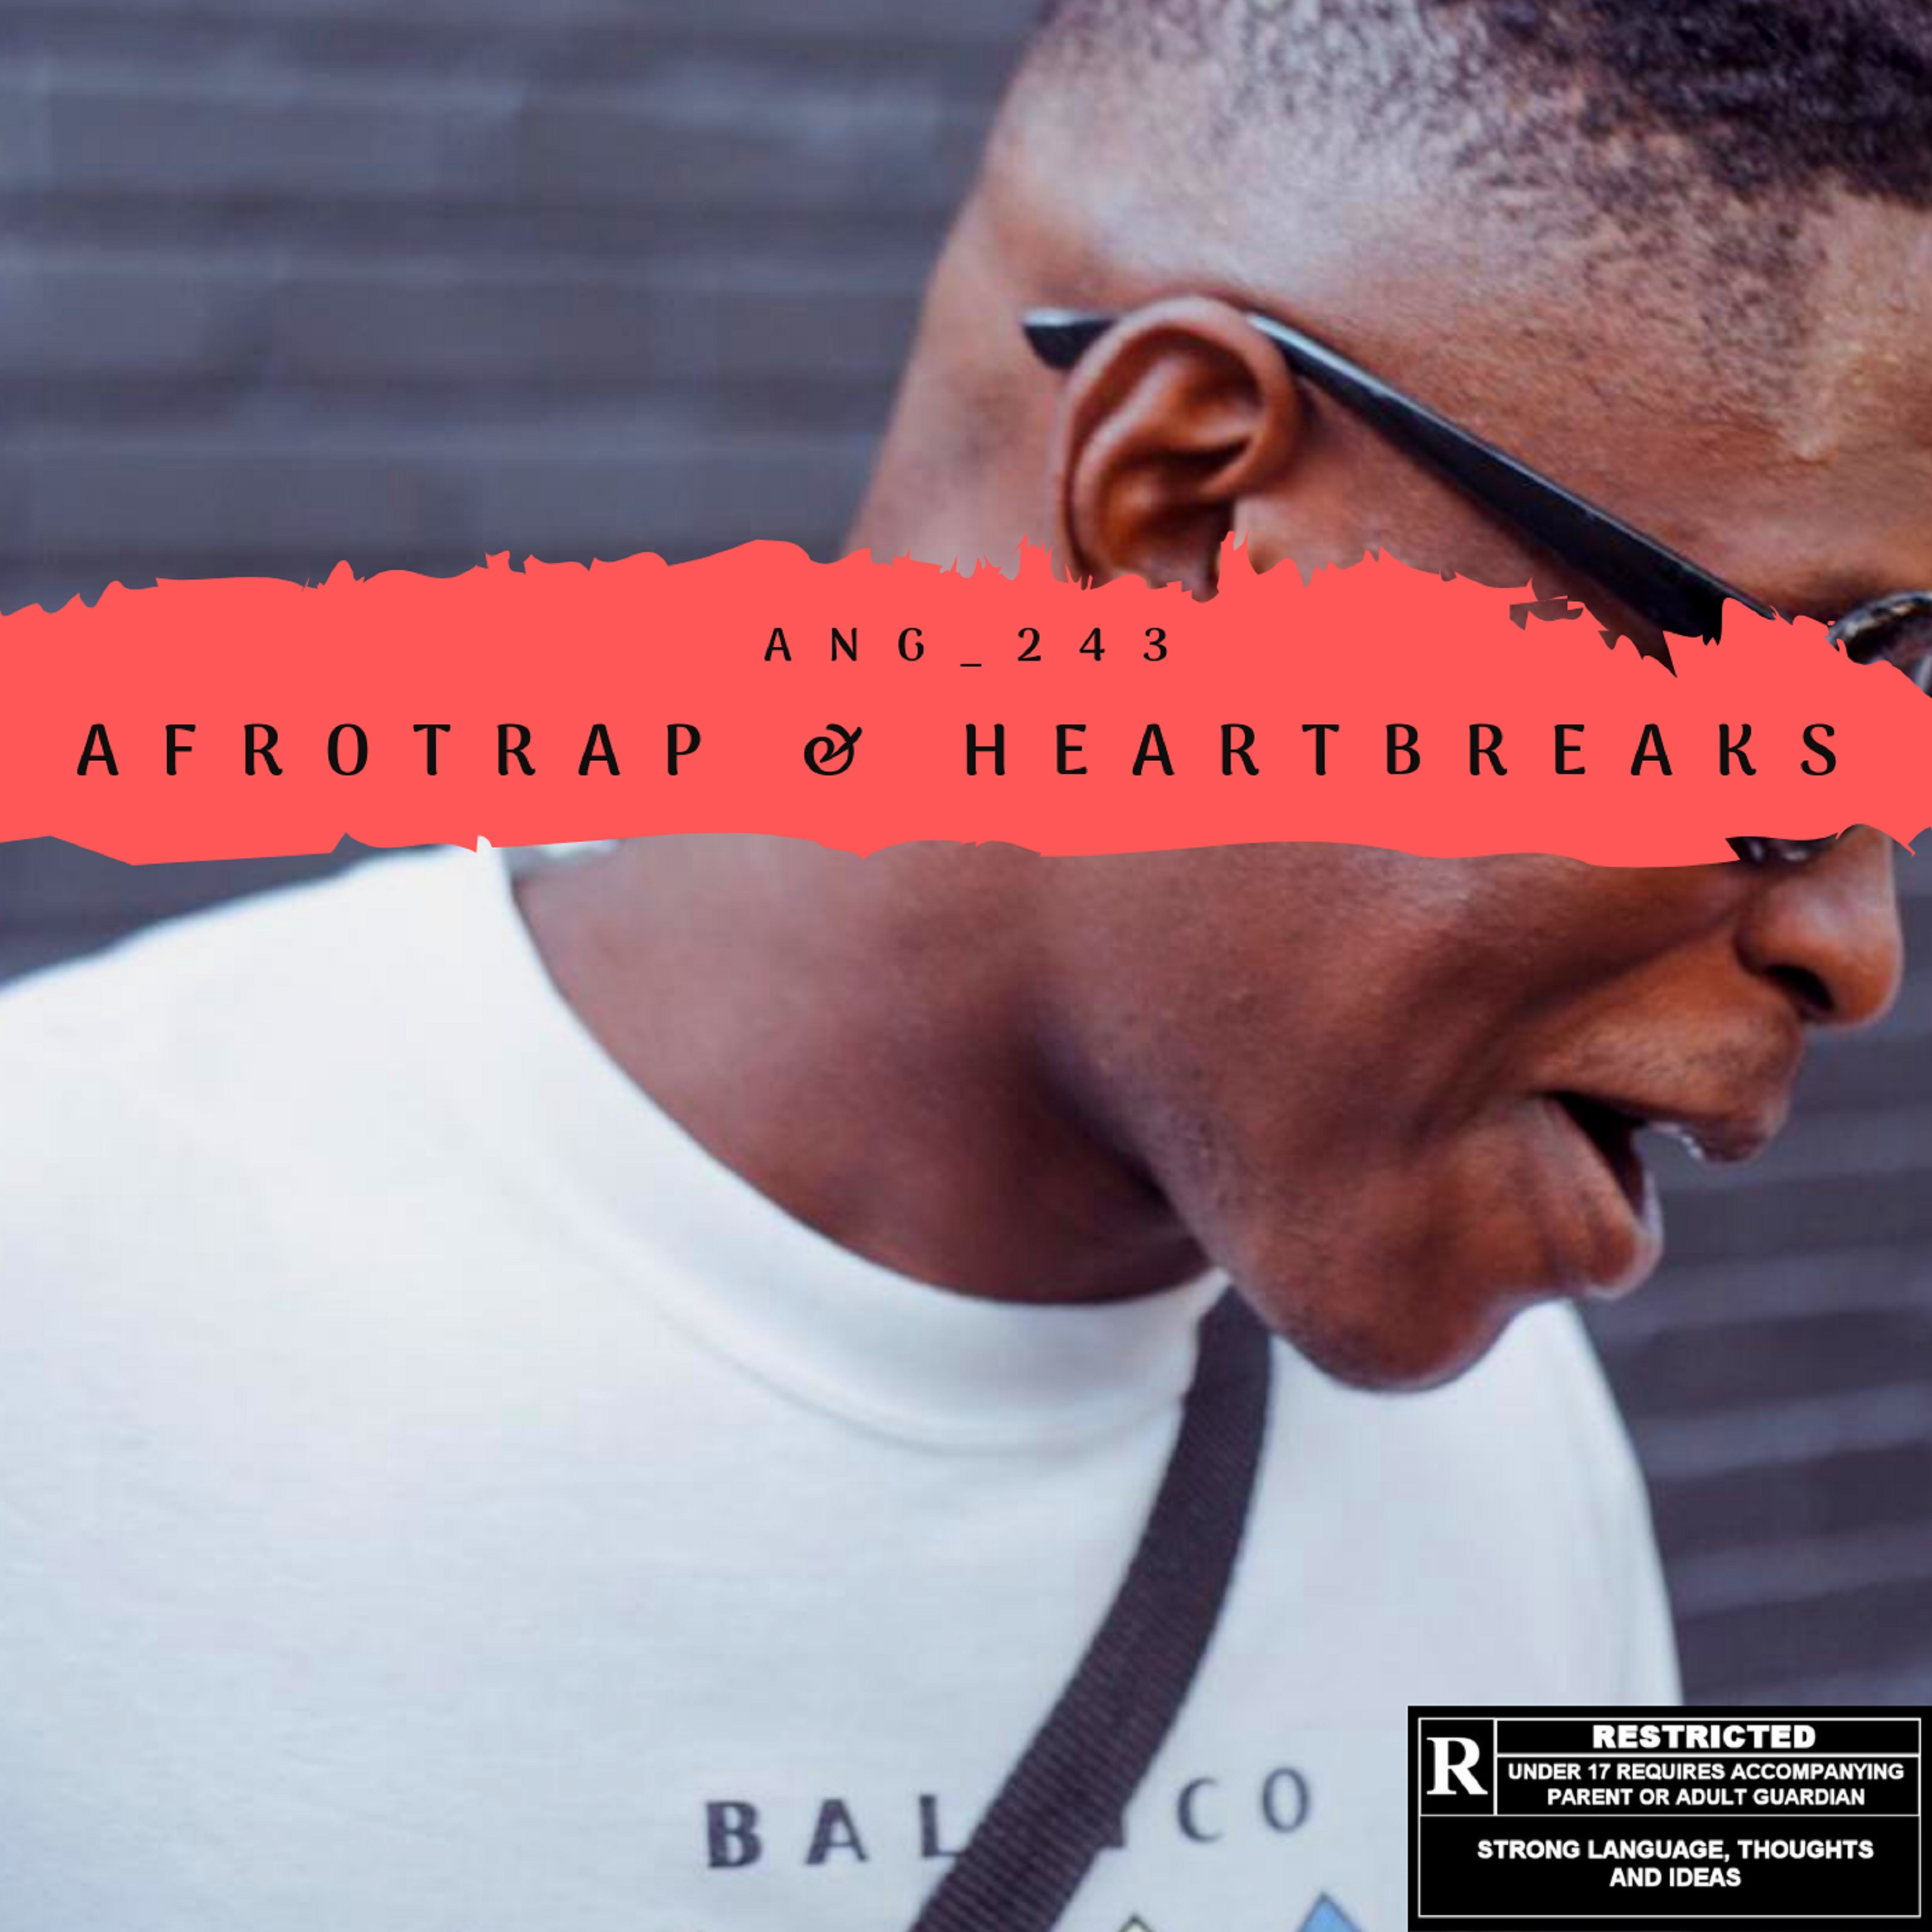 Listen To ANG's 'AfroTrap & Heartbreaks' EP 3